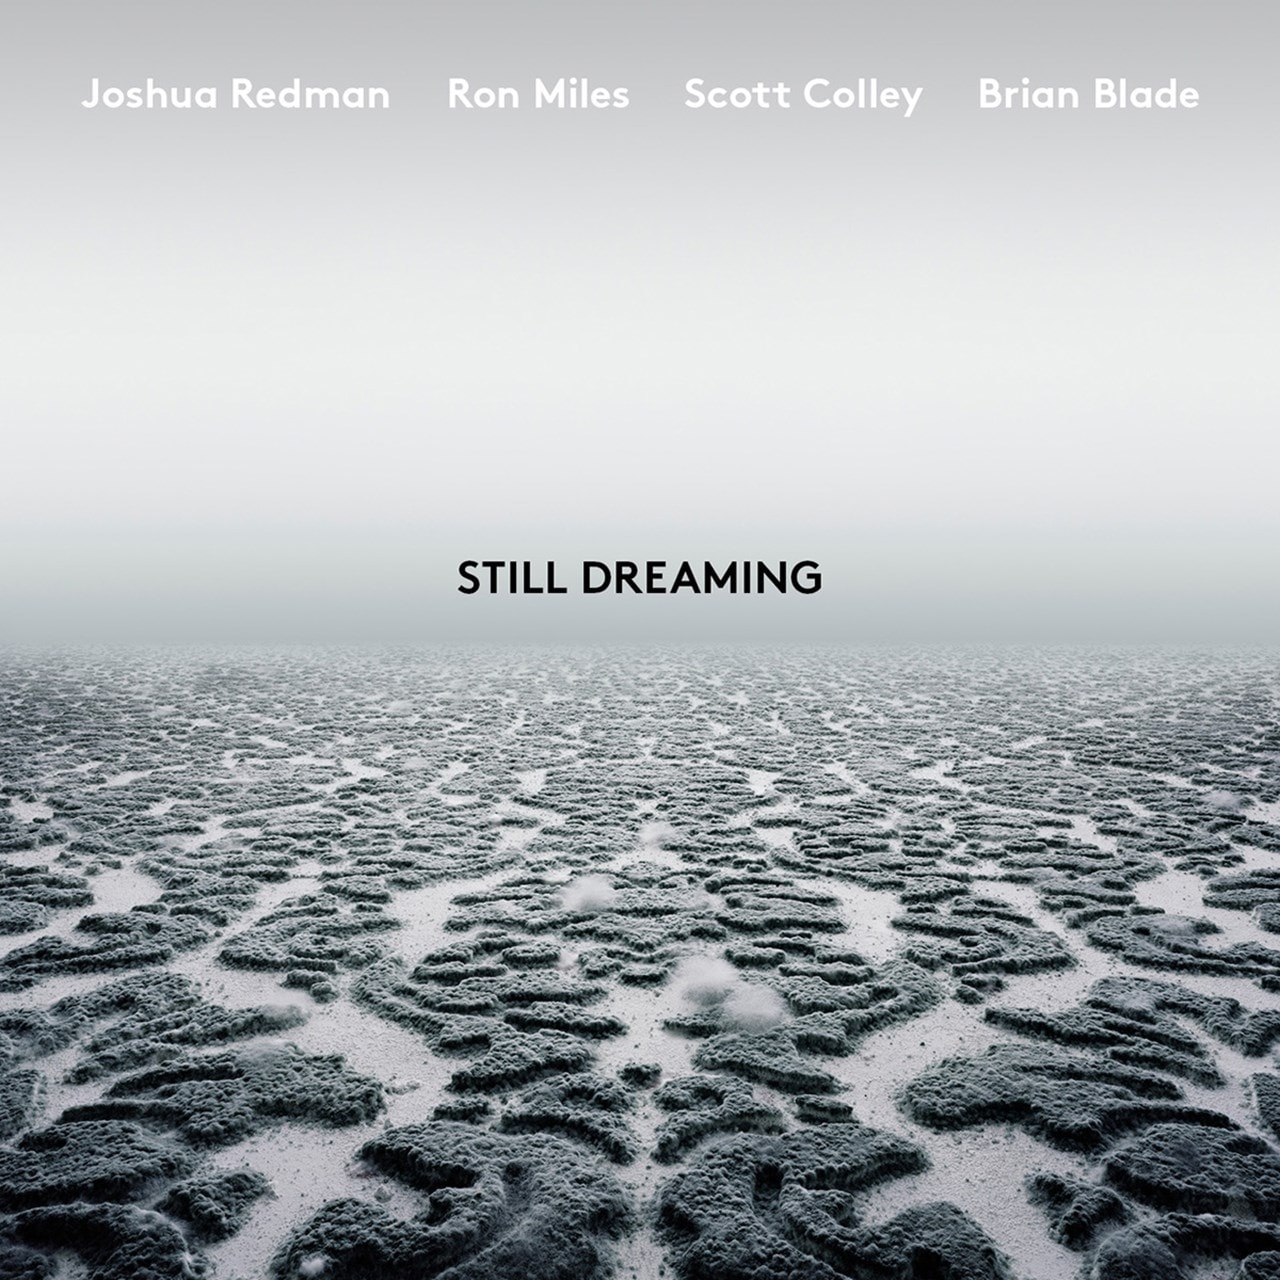 Still Dreaming (Feat. Ron Miles, Scott Colley & Brian Blade) - 1